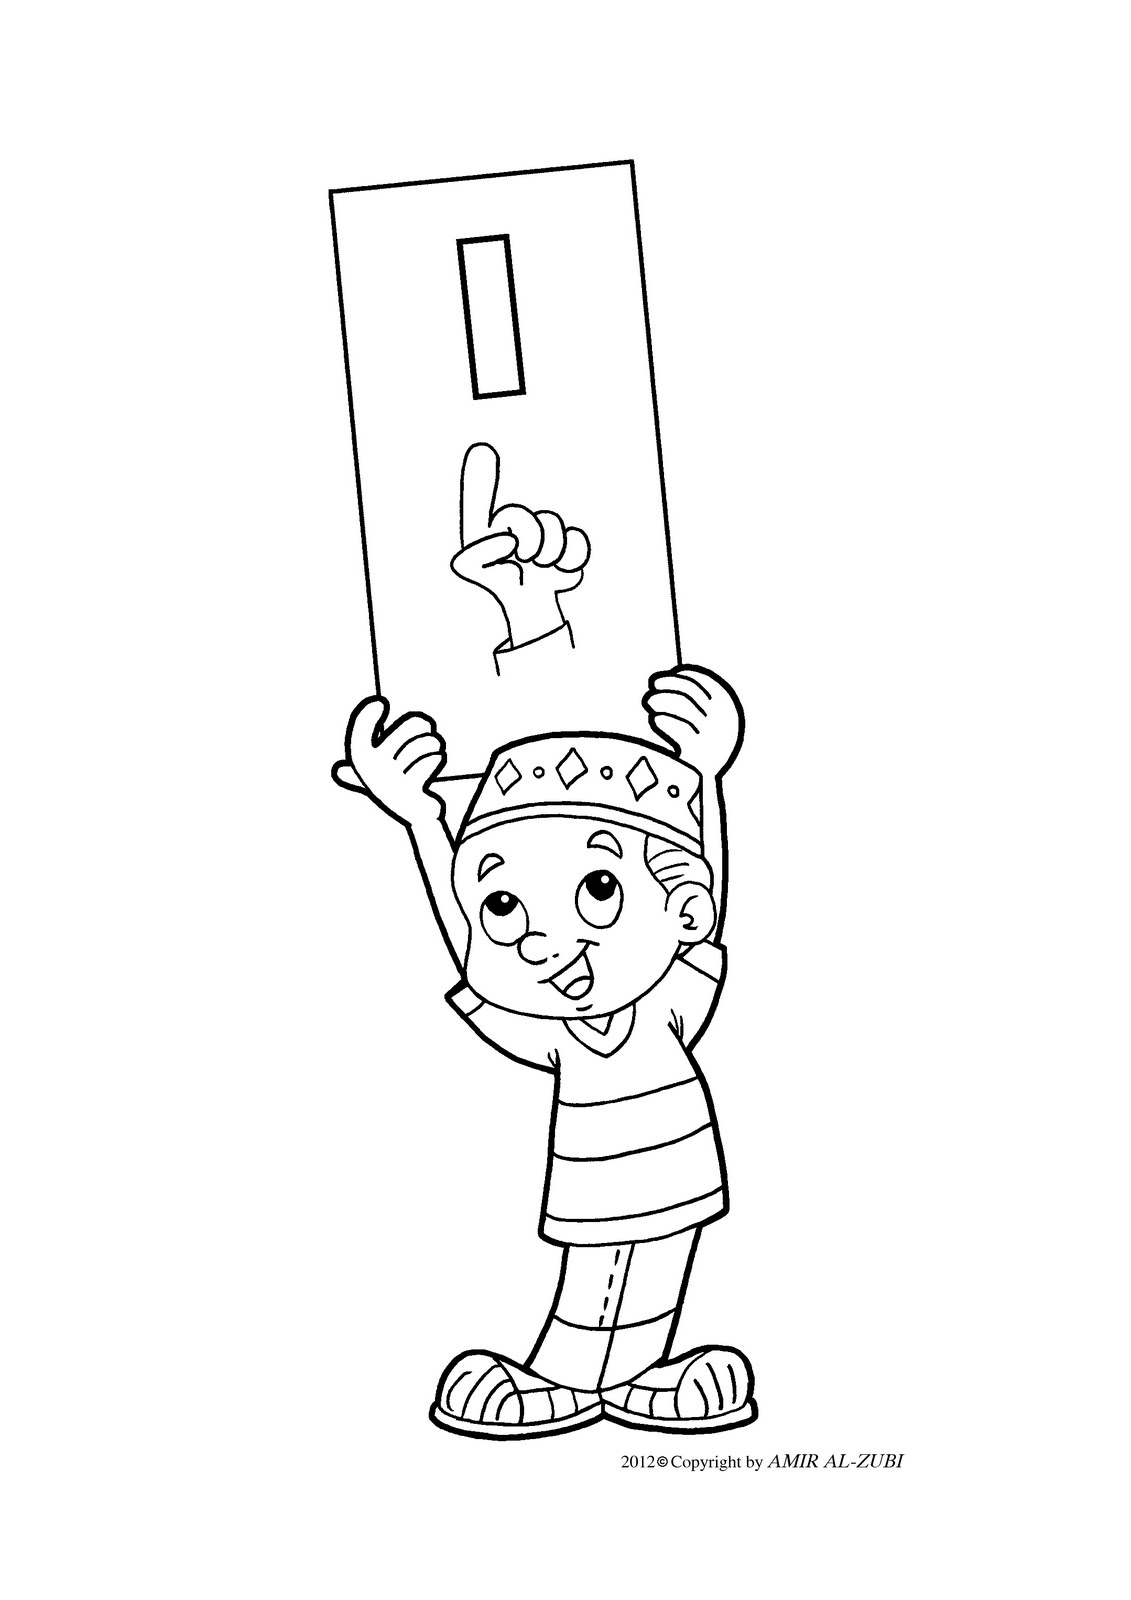 New Muslim Kids I Coloring Pages